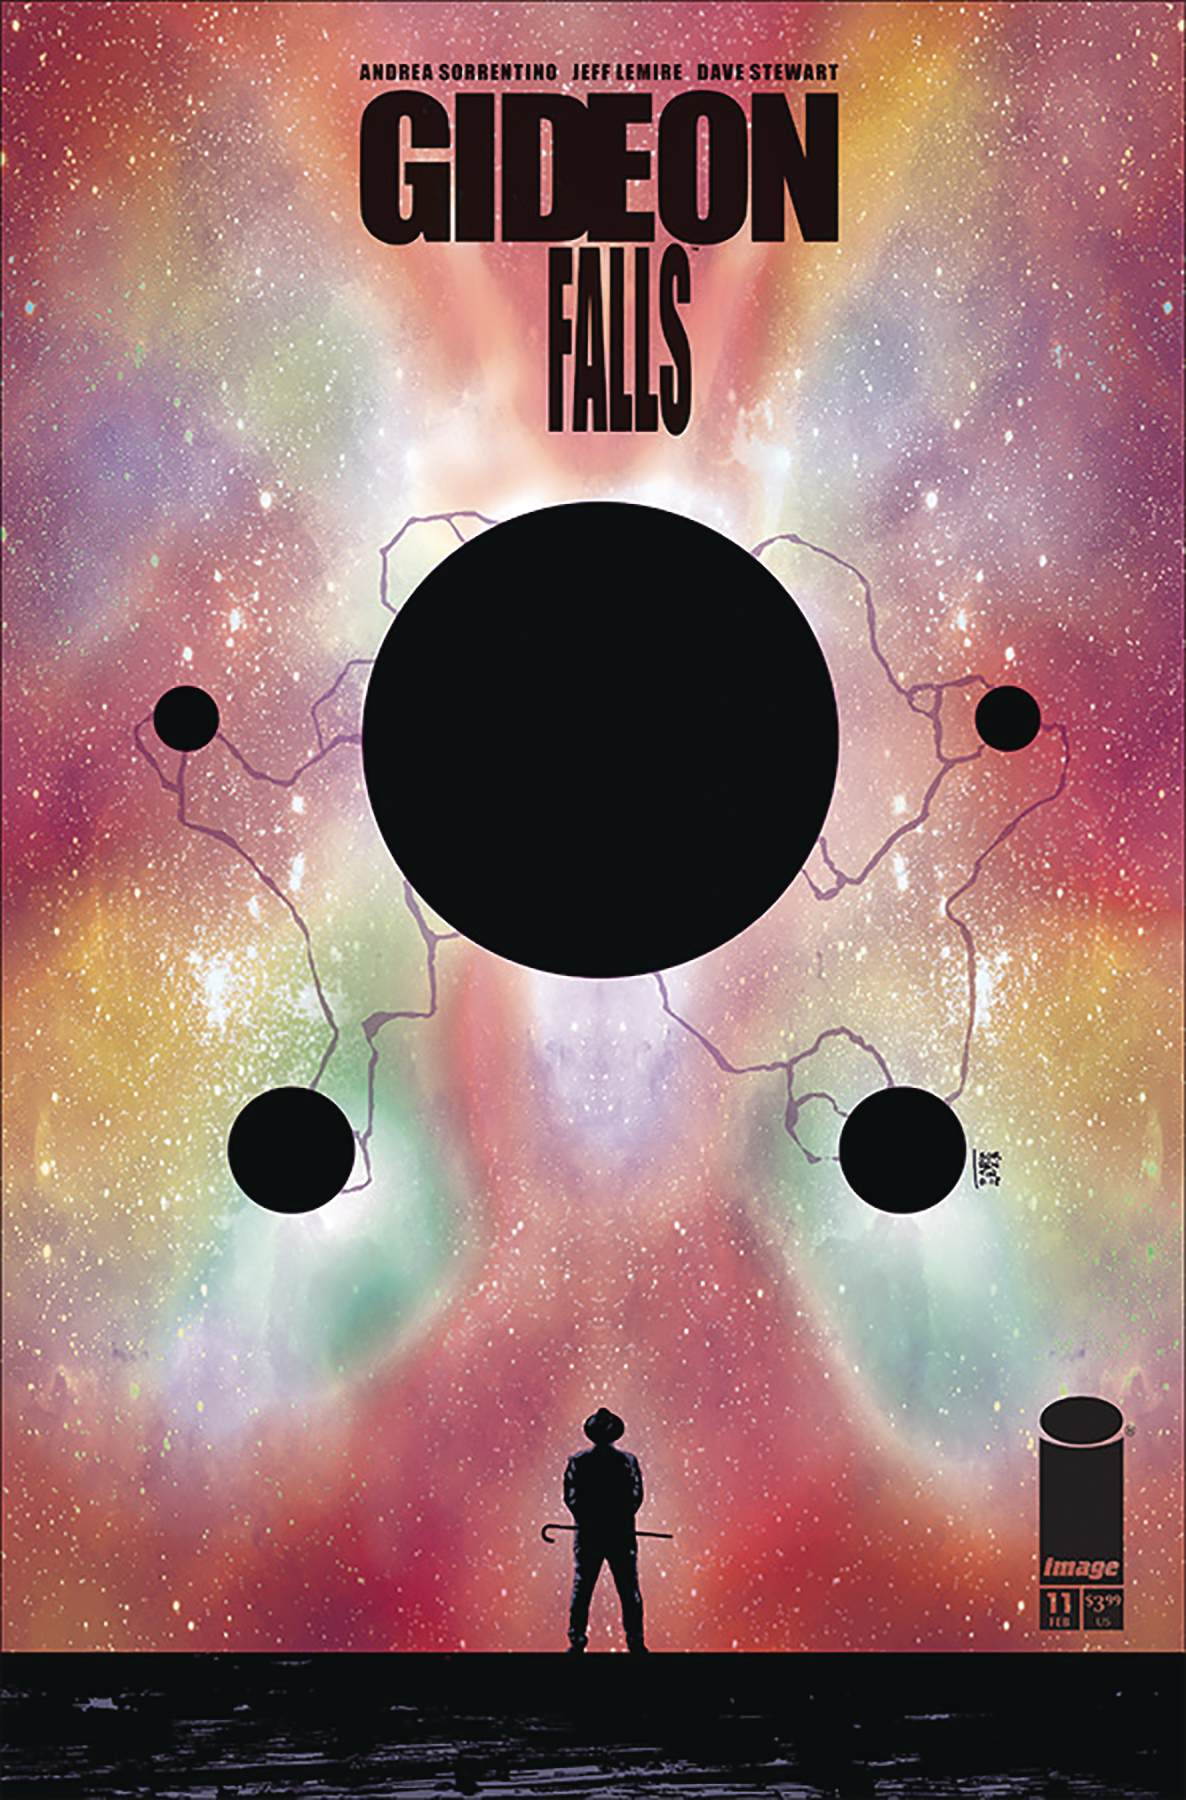 Gideon Falls #11  is out 2/13/2019.